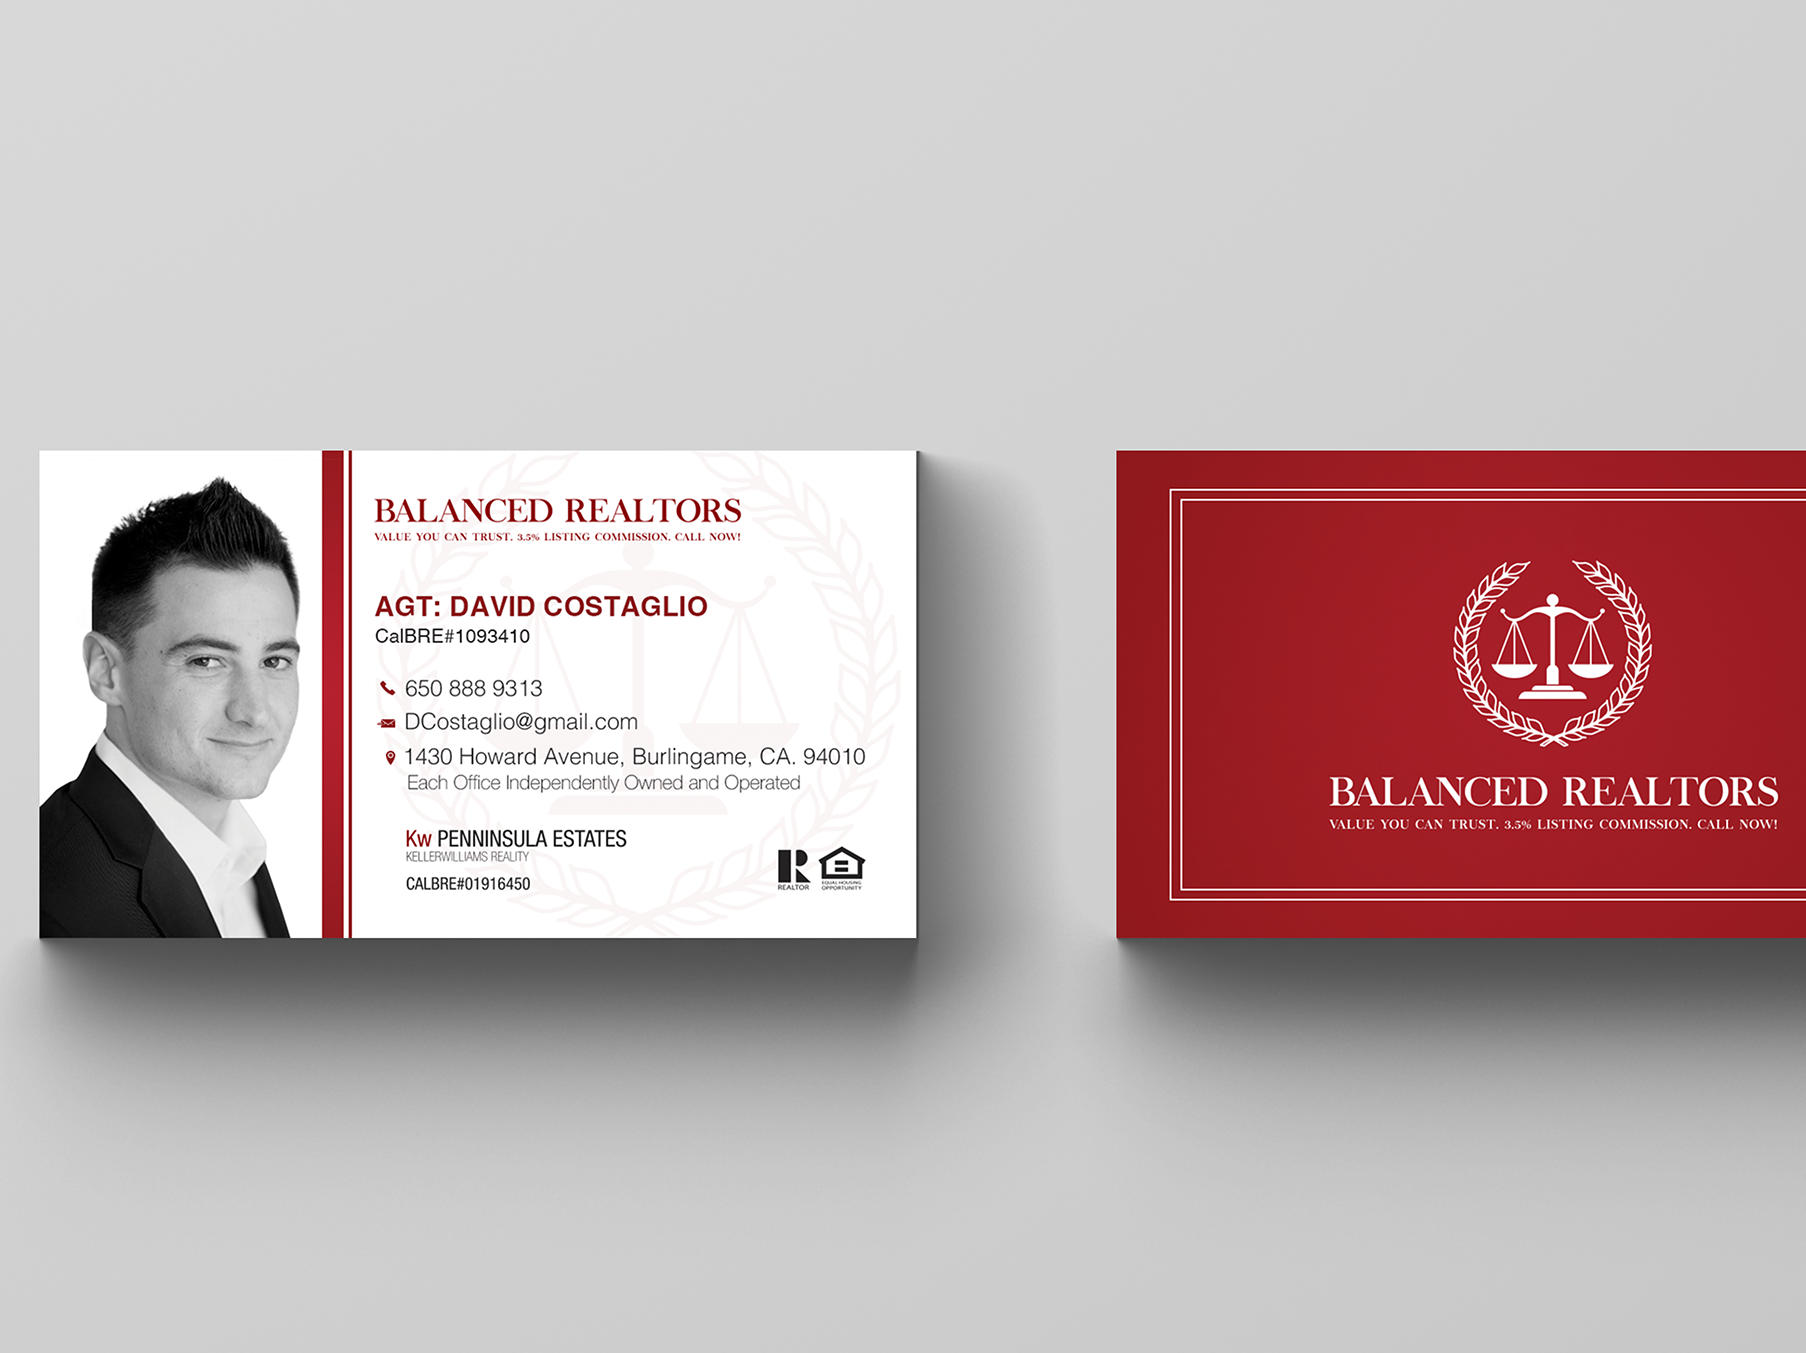 Balanced Realtors Business Card